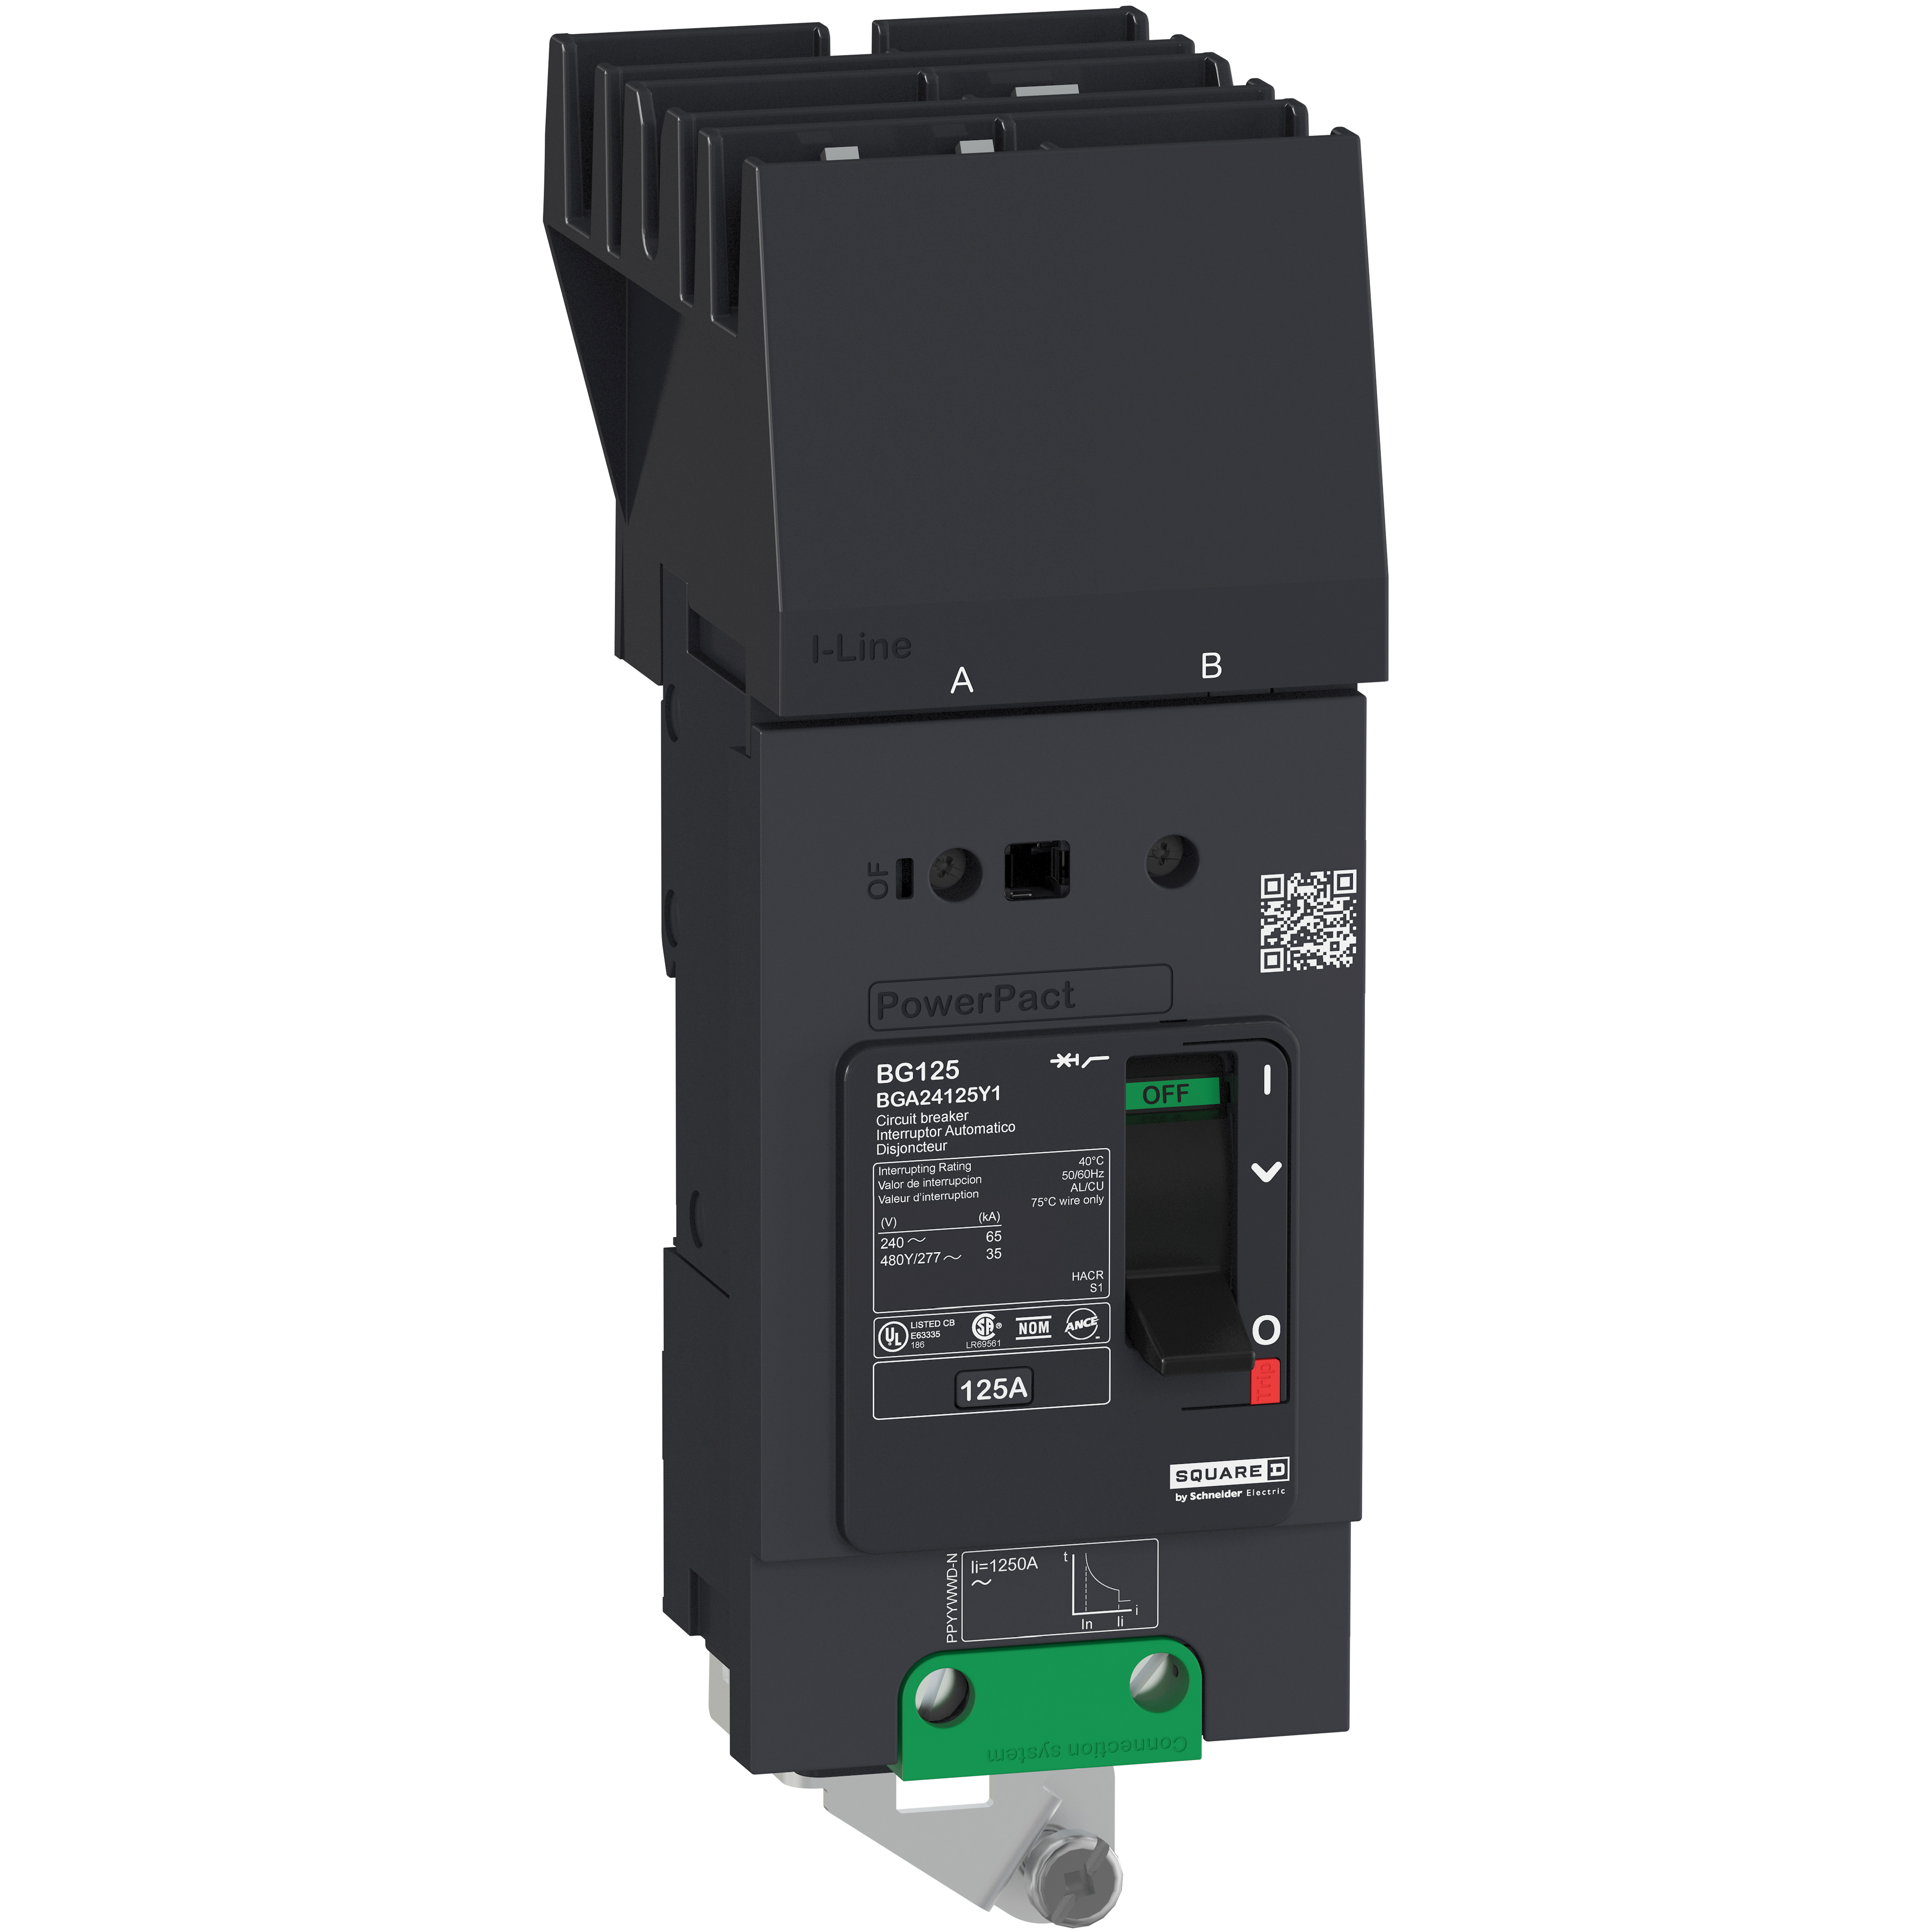 SQUARE D PowerPact B Circuit Breaker, 70A, 2P, 480Y/277V AC, 18kA at 480/277 UL, I-Line